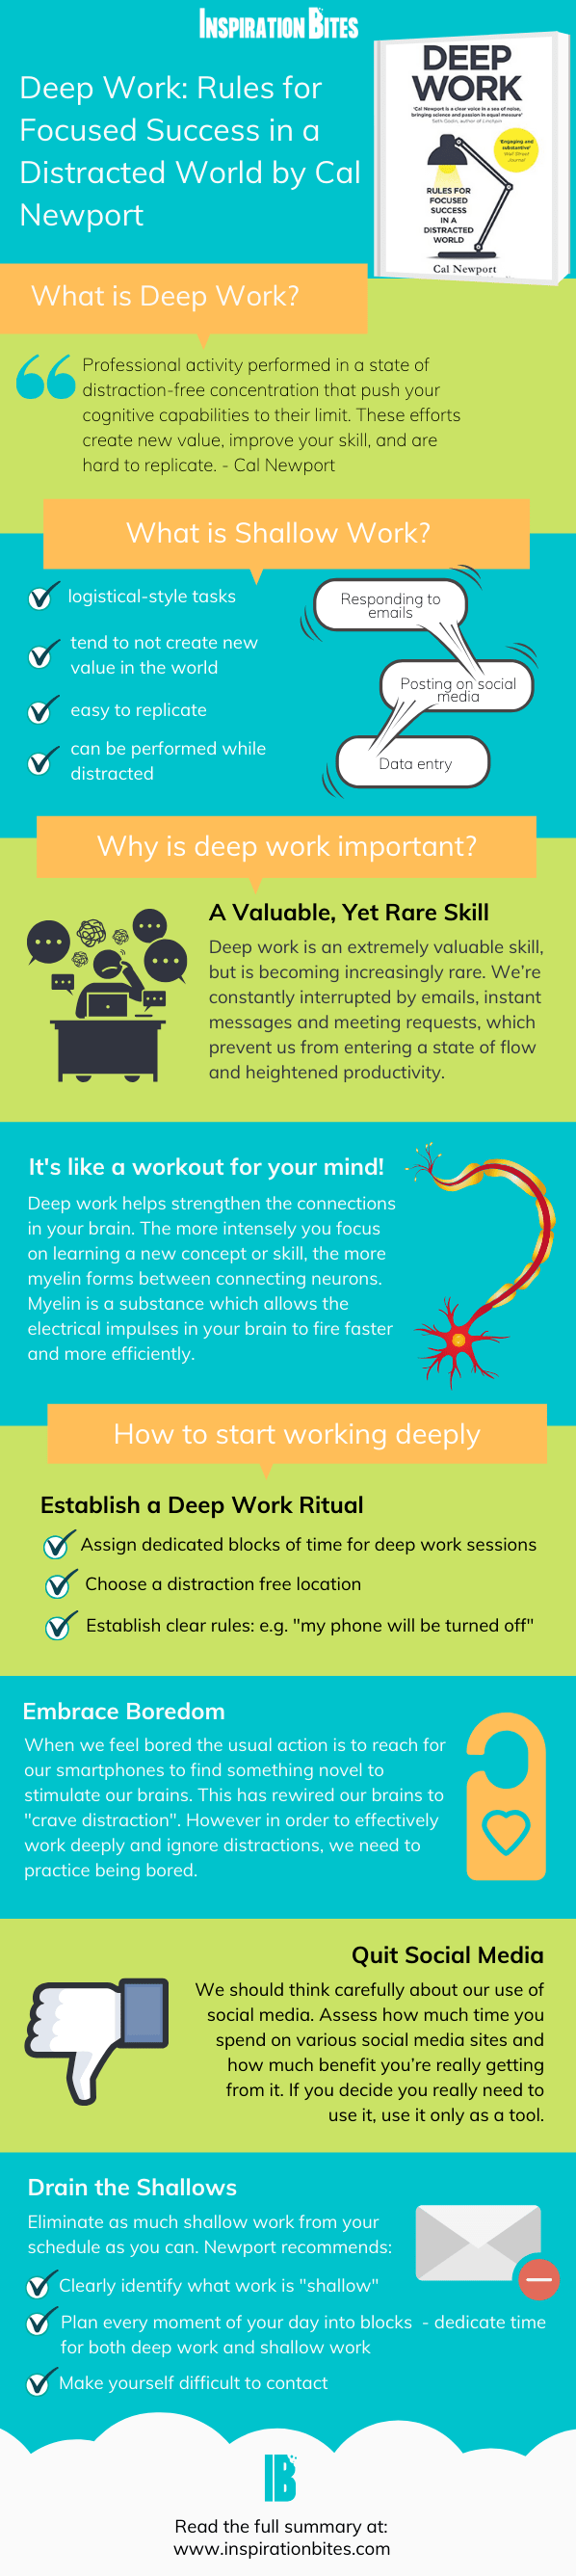 Deep Work Summary Infographic Inspiration Bites